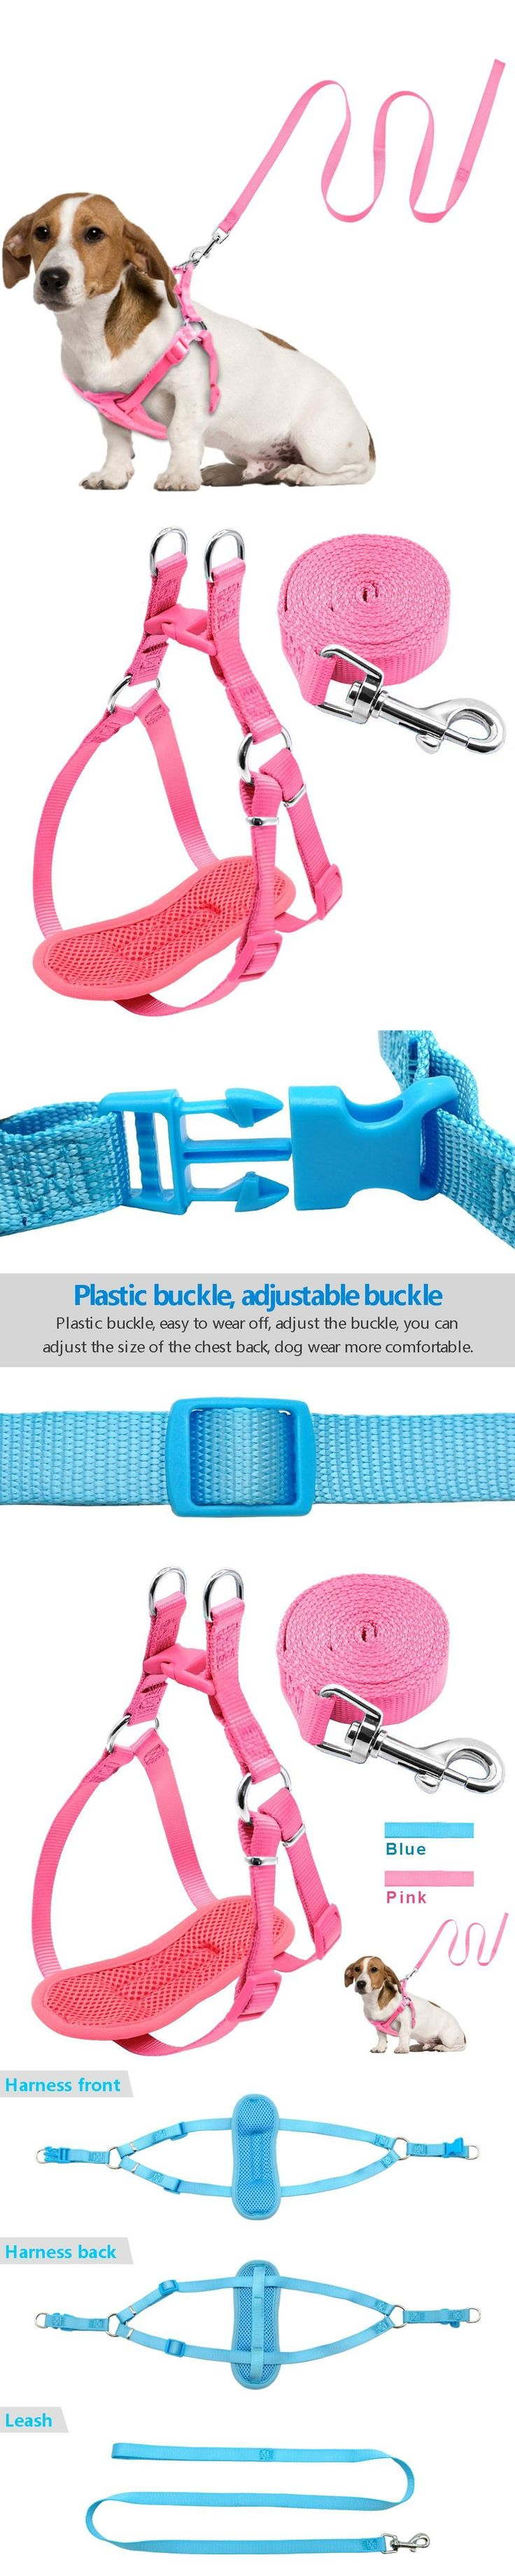 No Pull Dog Harness and Leash Set Nylon Mesh Adjustable Vest For Small Puppy Medium Dogs Pink Blue 2 Size S M http://www.barklands.com/product-category/car-accessories/vehicle-ramps/